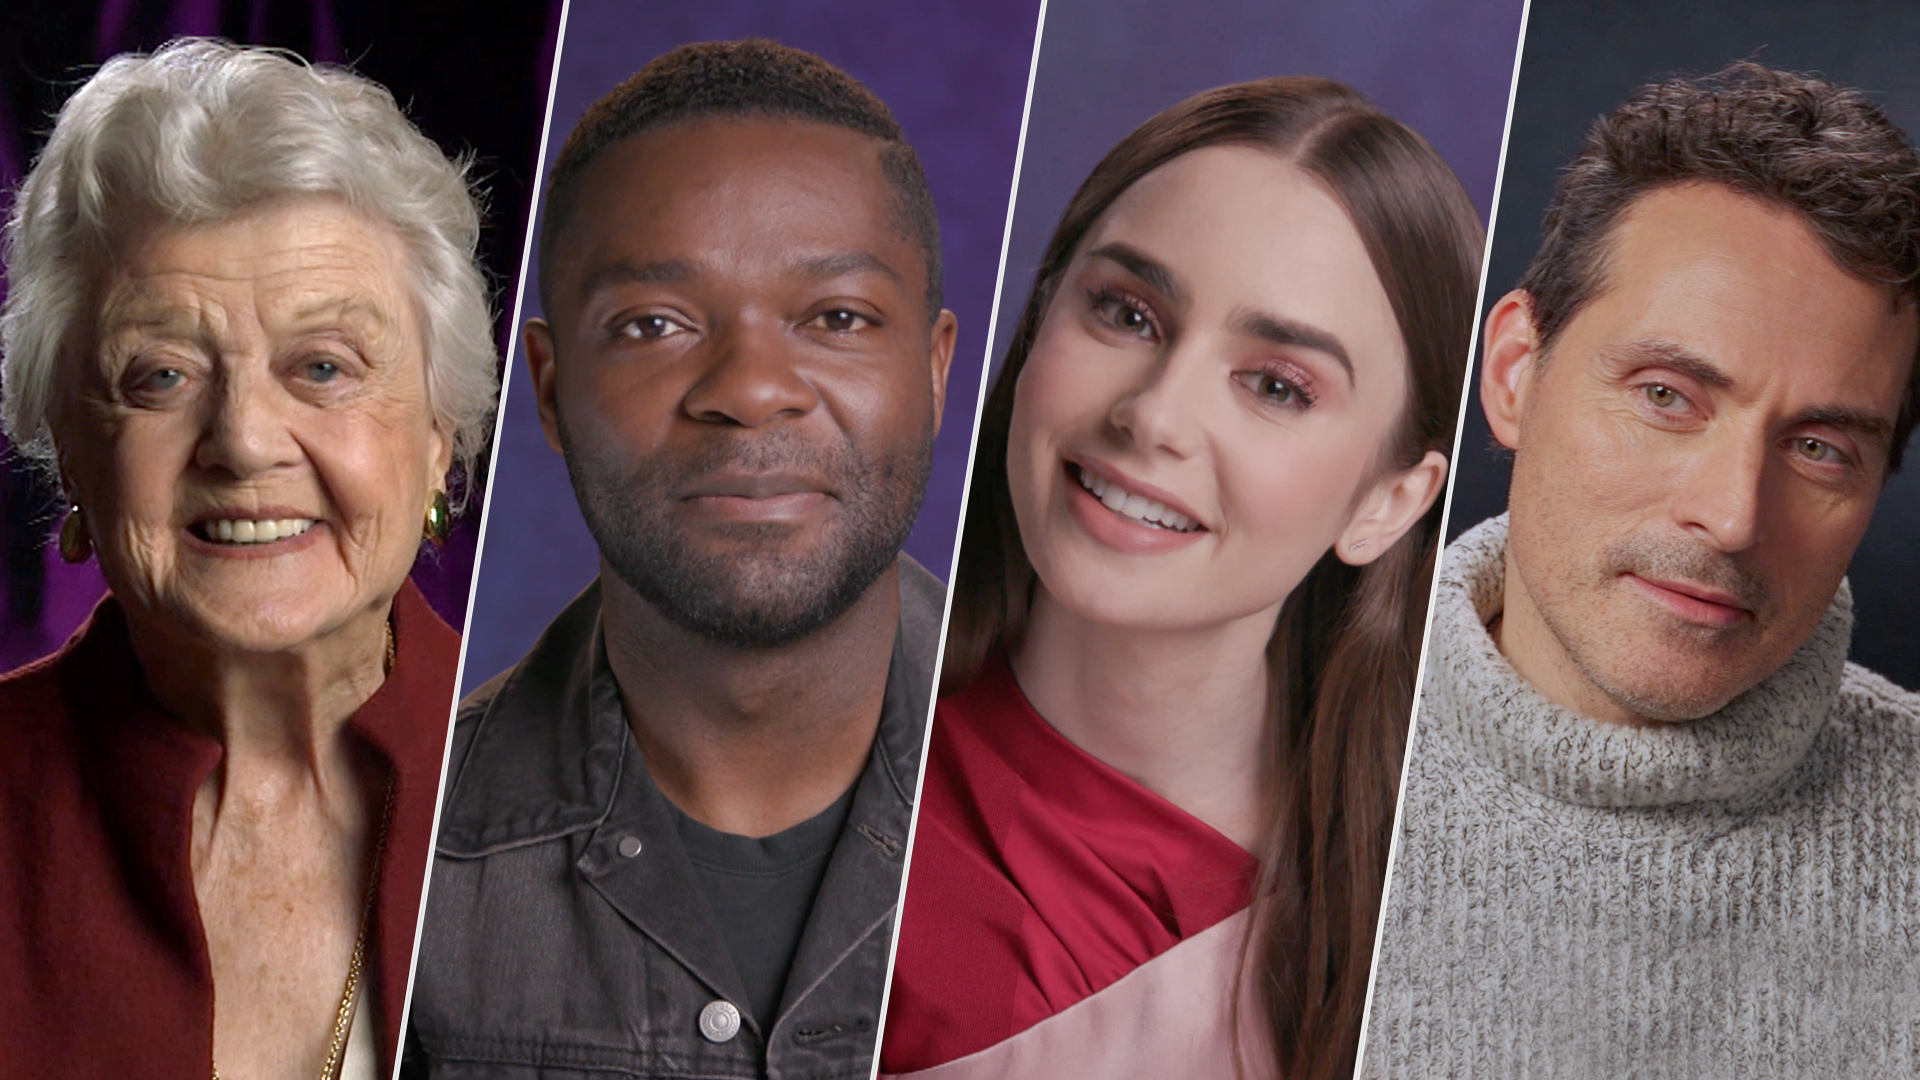 Angela Lansbury, David Oyelowo, Lily Collins and Rufus Sewell